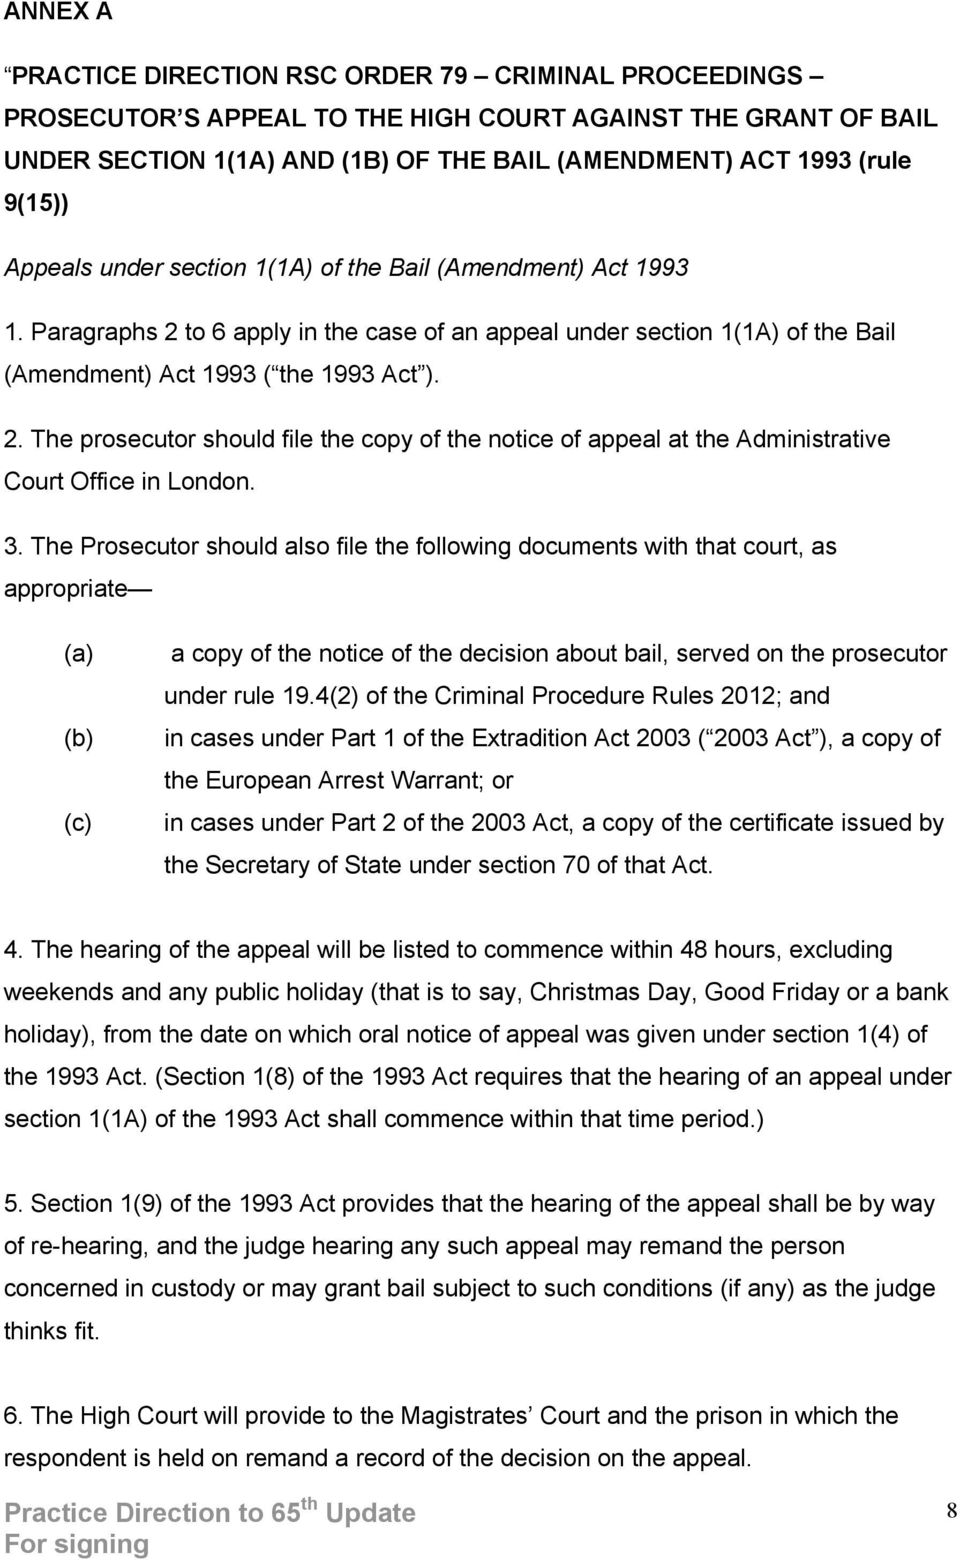 3. The Prosecutor should also file the following documents with that court, as appropriate (a) (b) (c) a copy of the notice of the decision about bail, served on the prosecutor under rule 19.